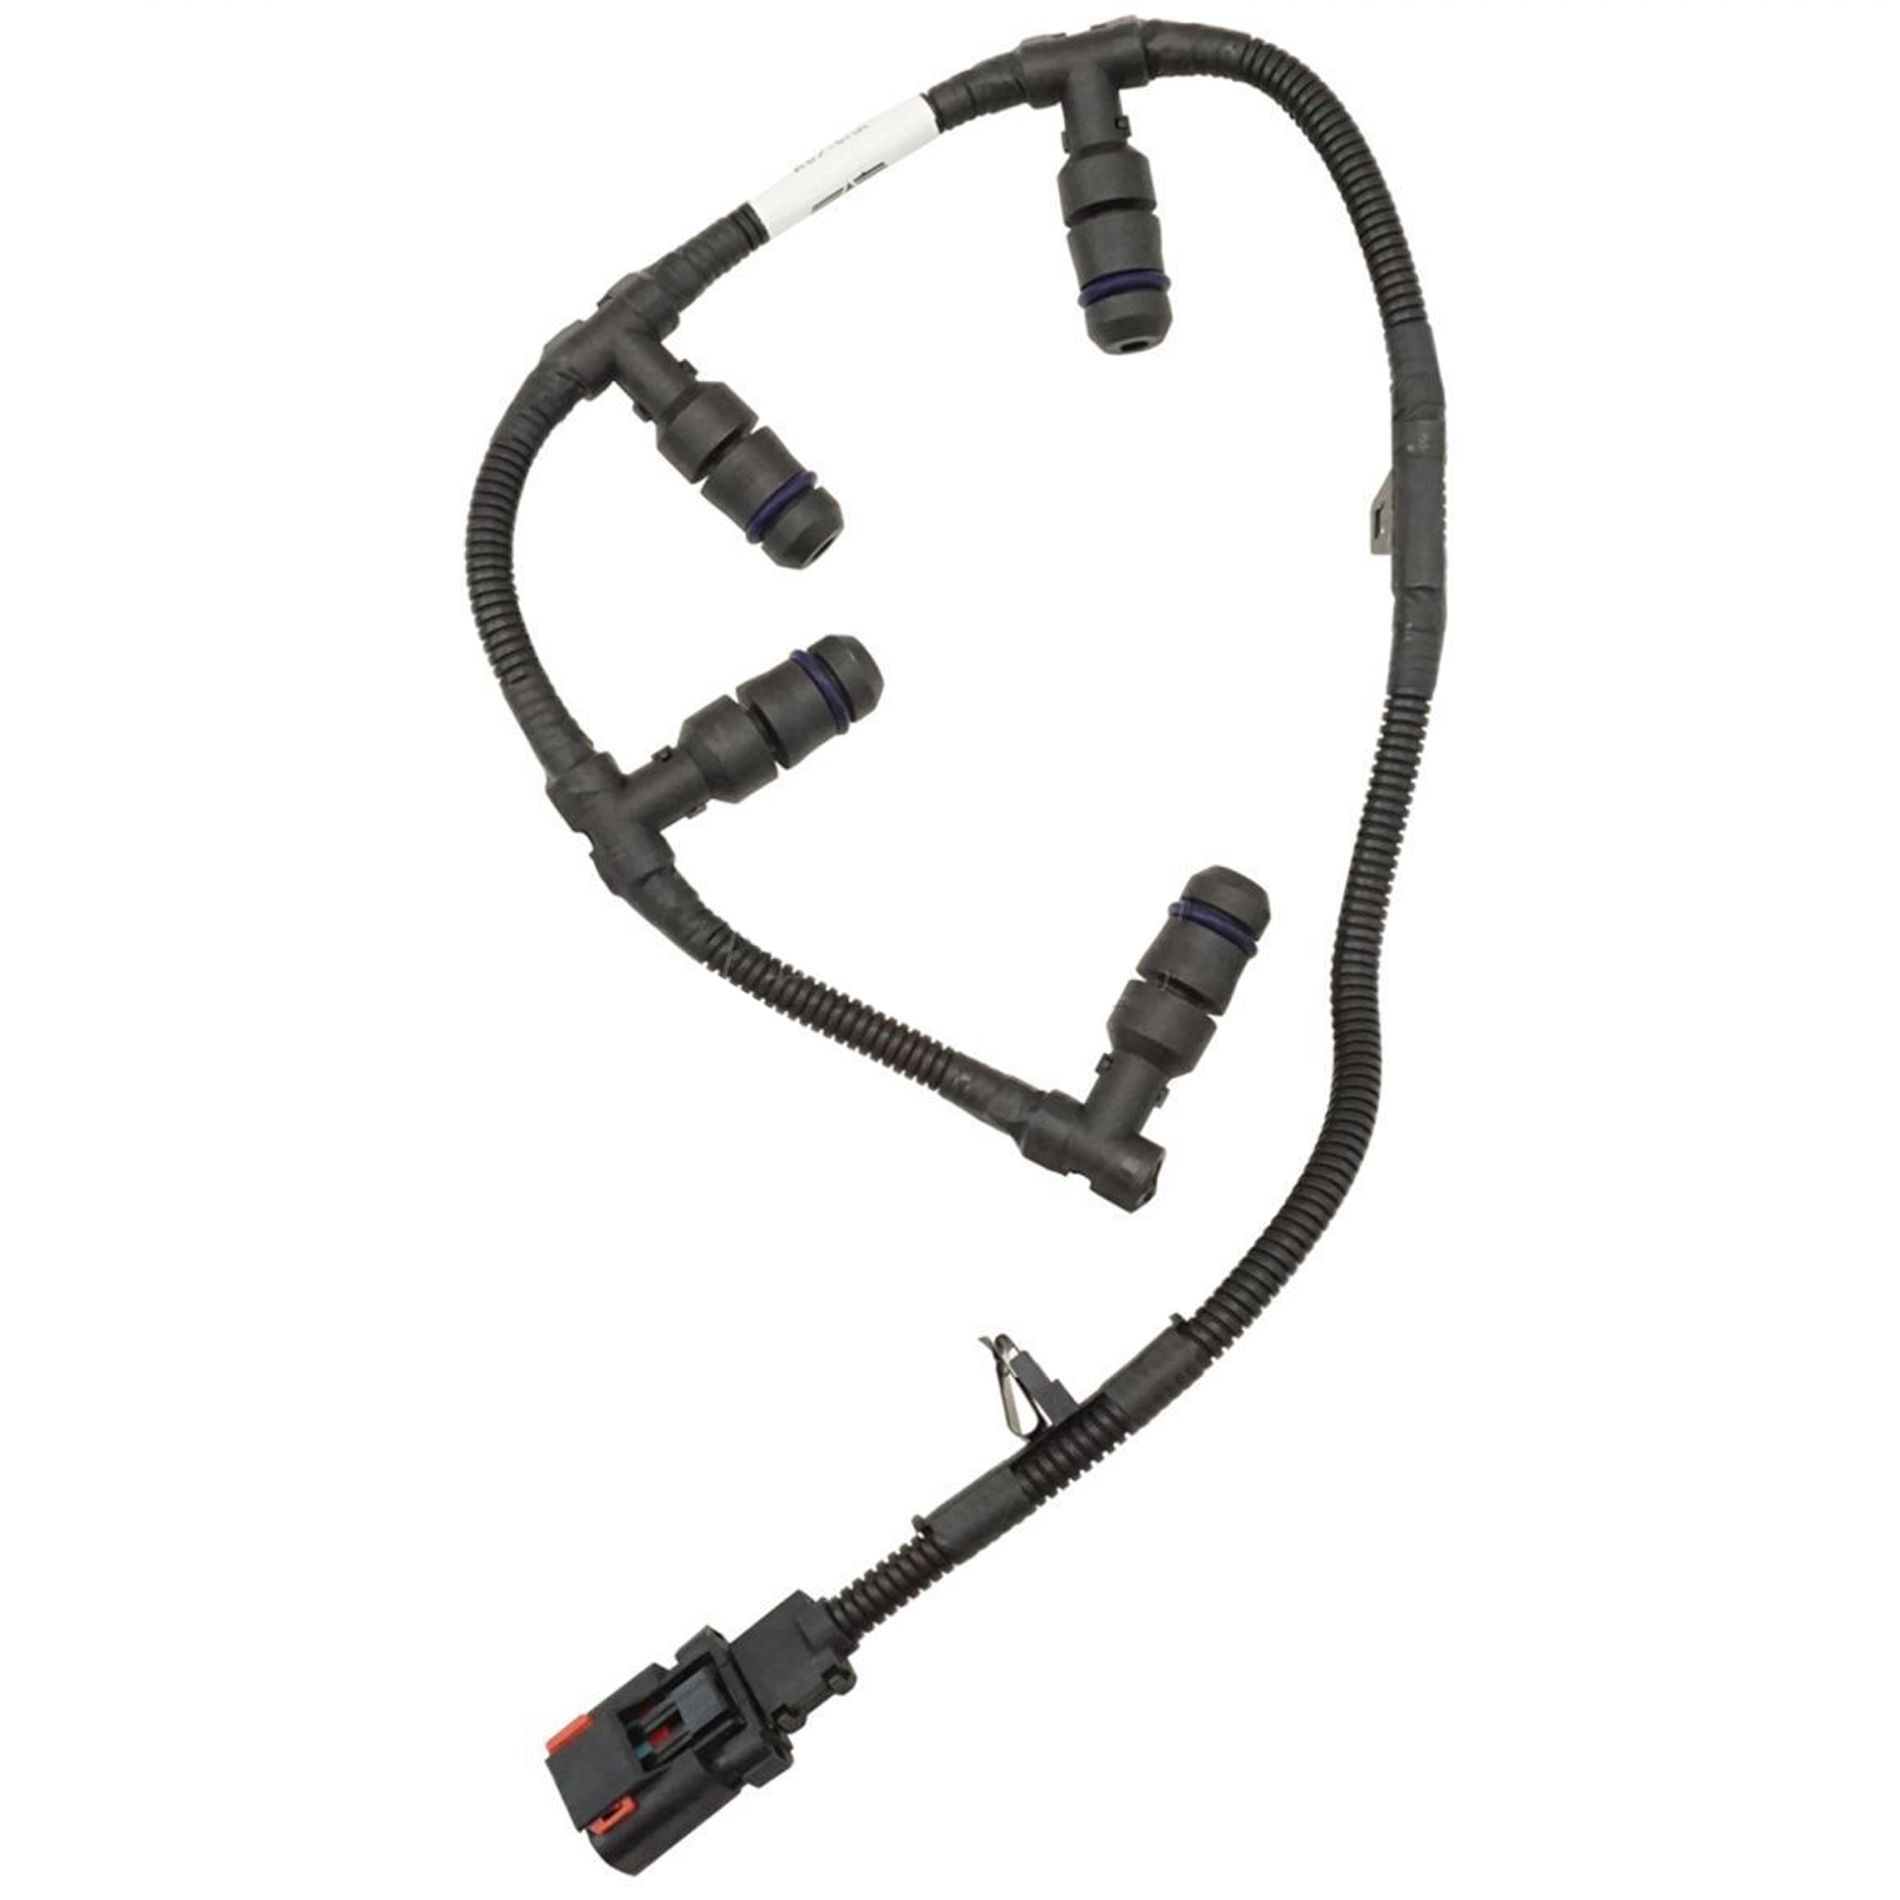 Sel Glow Plug Harness For Ford E350 E450 F250 F350